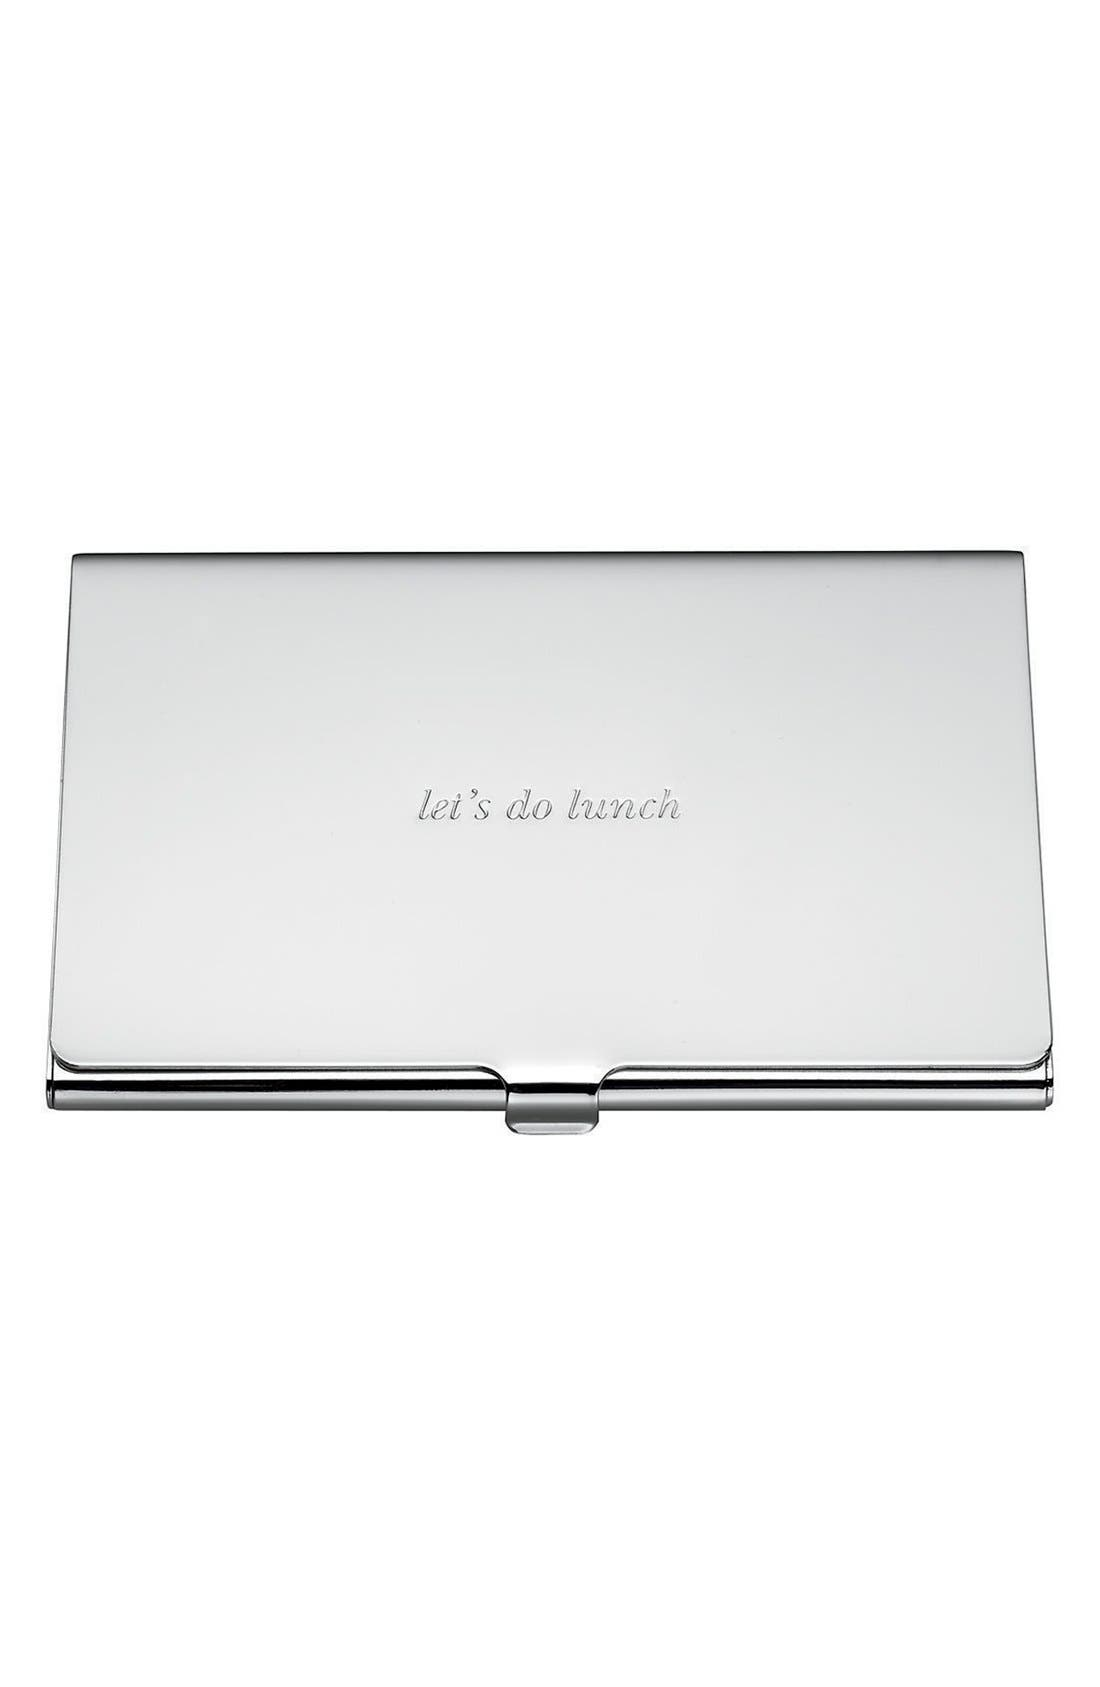 Main Image - kate spade new york let's do lunch business card holder